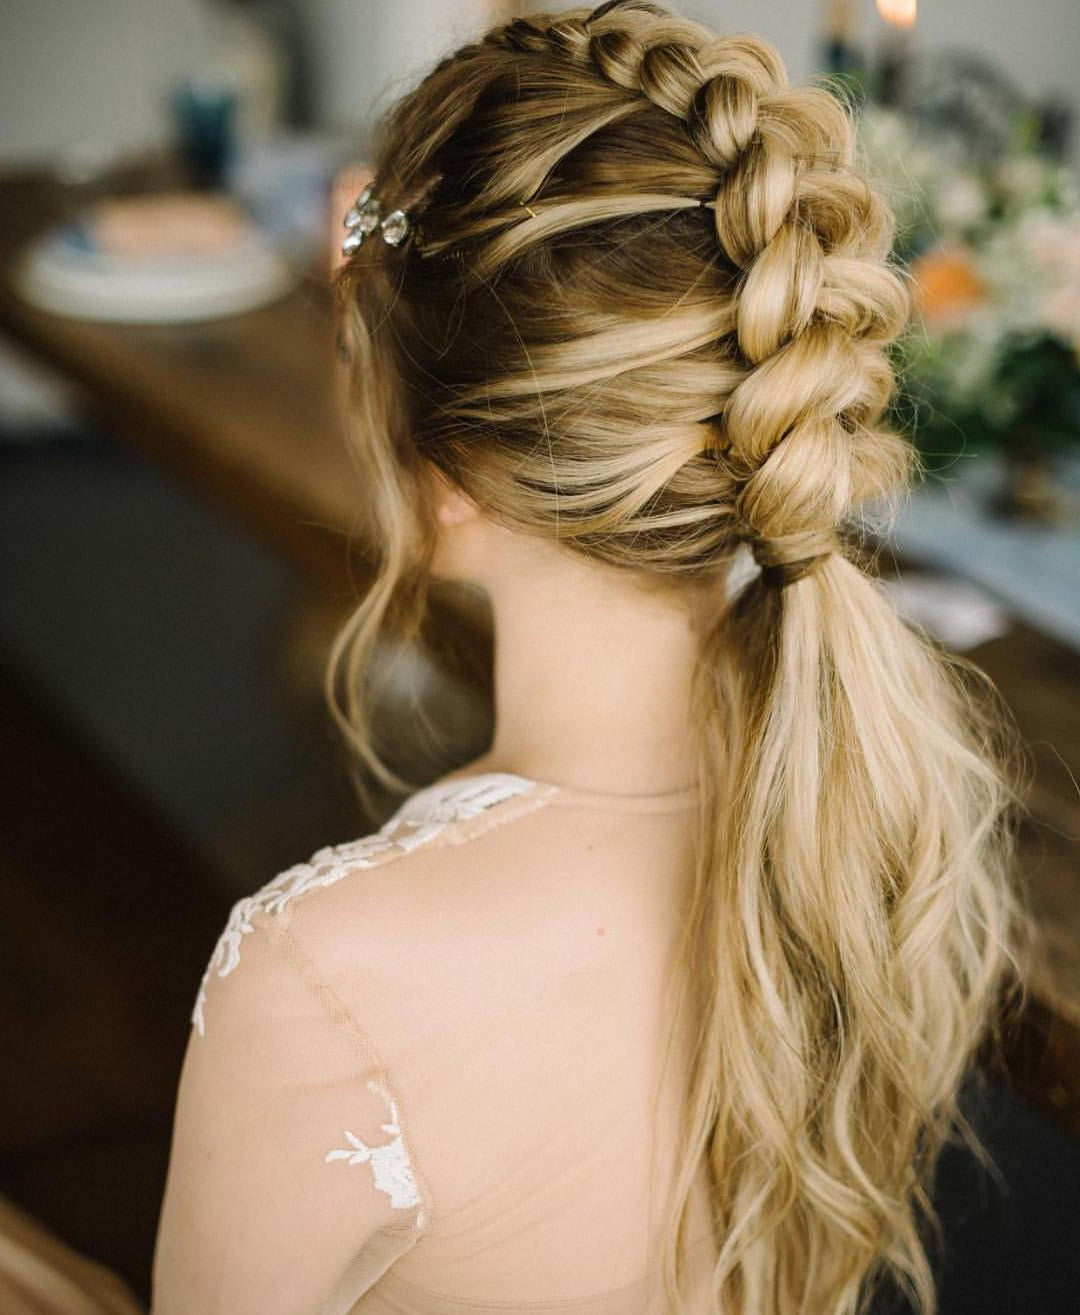 10 Braided Hairstyles For Long Hair – Weddings, Festivals Within Well Known Blonde Braid Hairstyles (View 3 of 20)